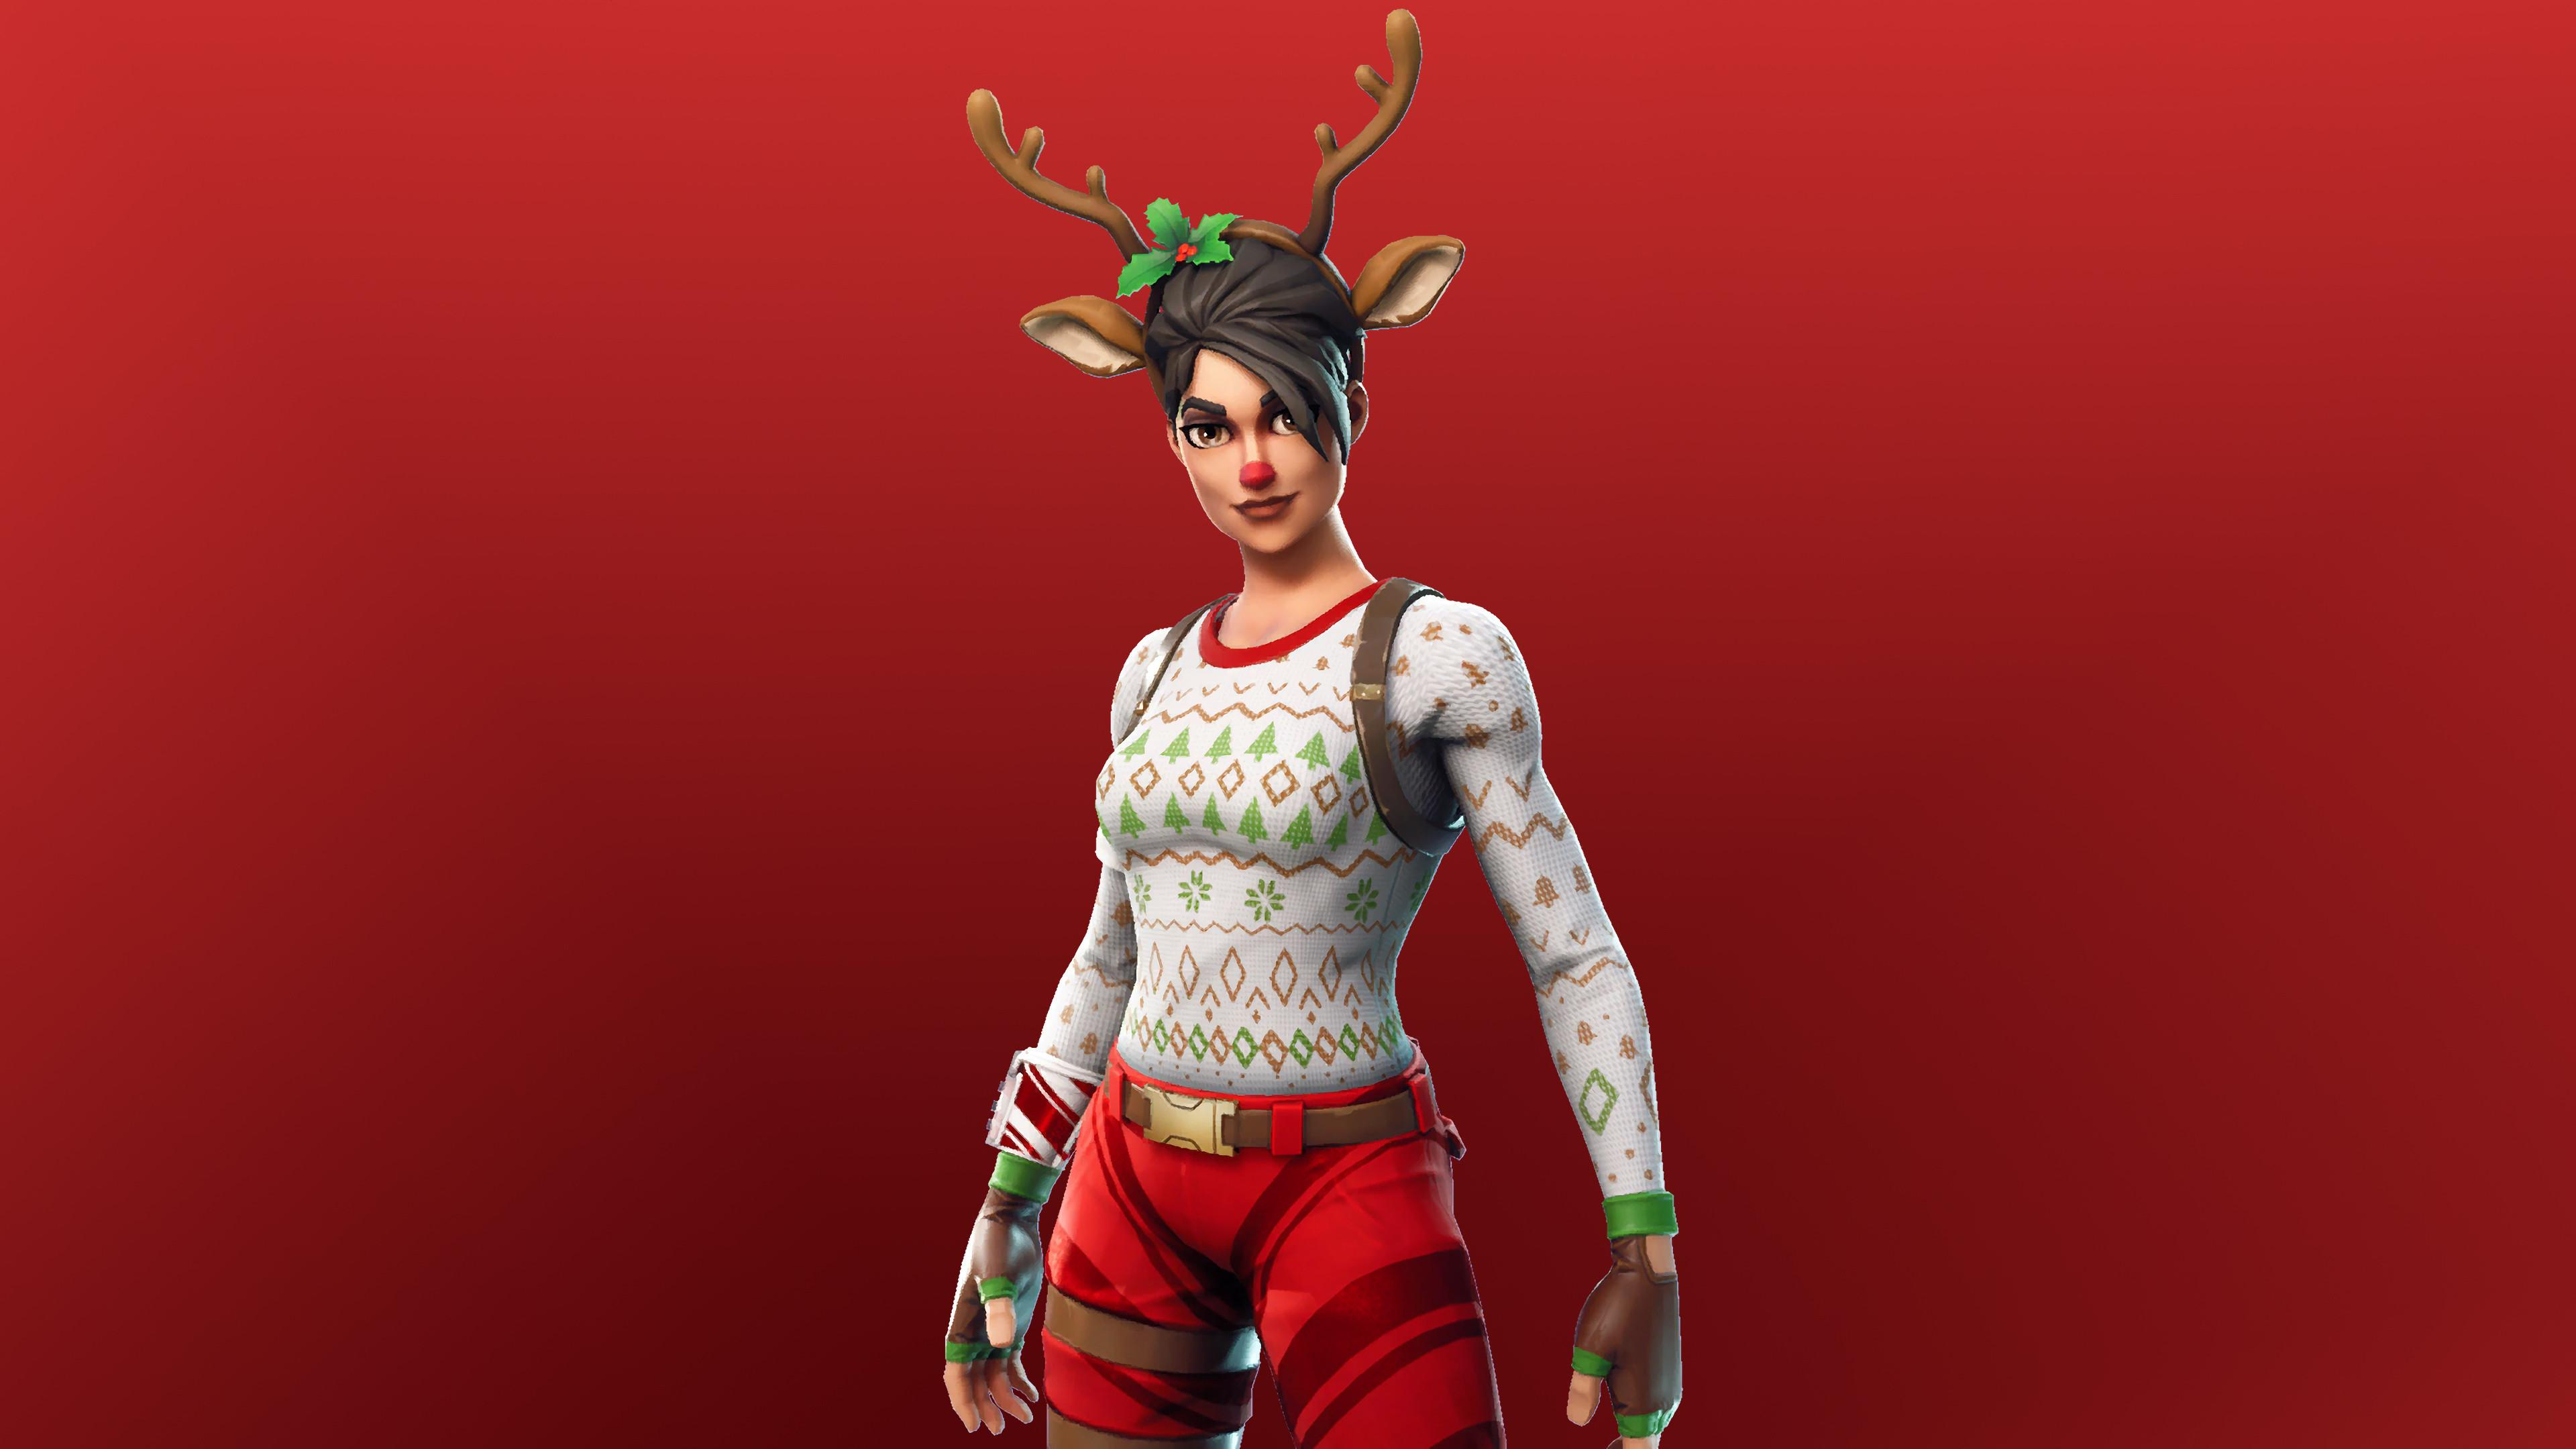 Red Nosed Raider 4K 8K HD Fortnite Battle Royale Wallpapers